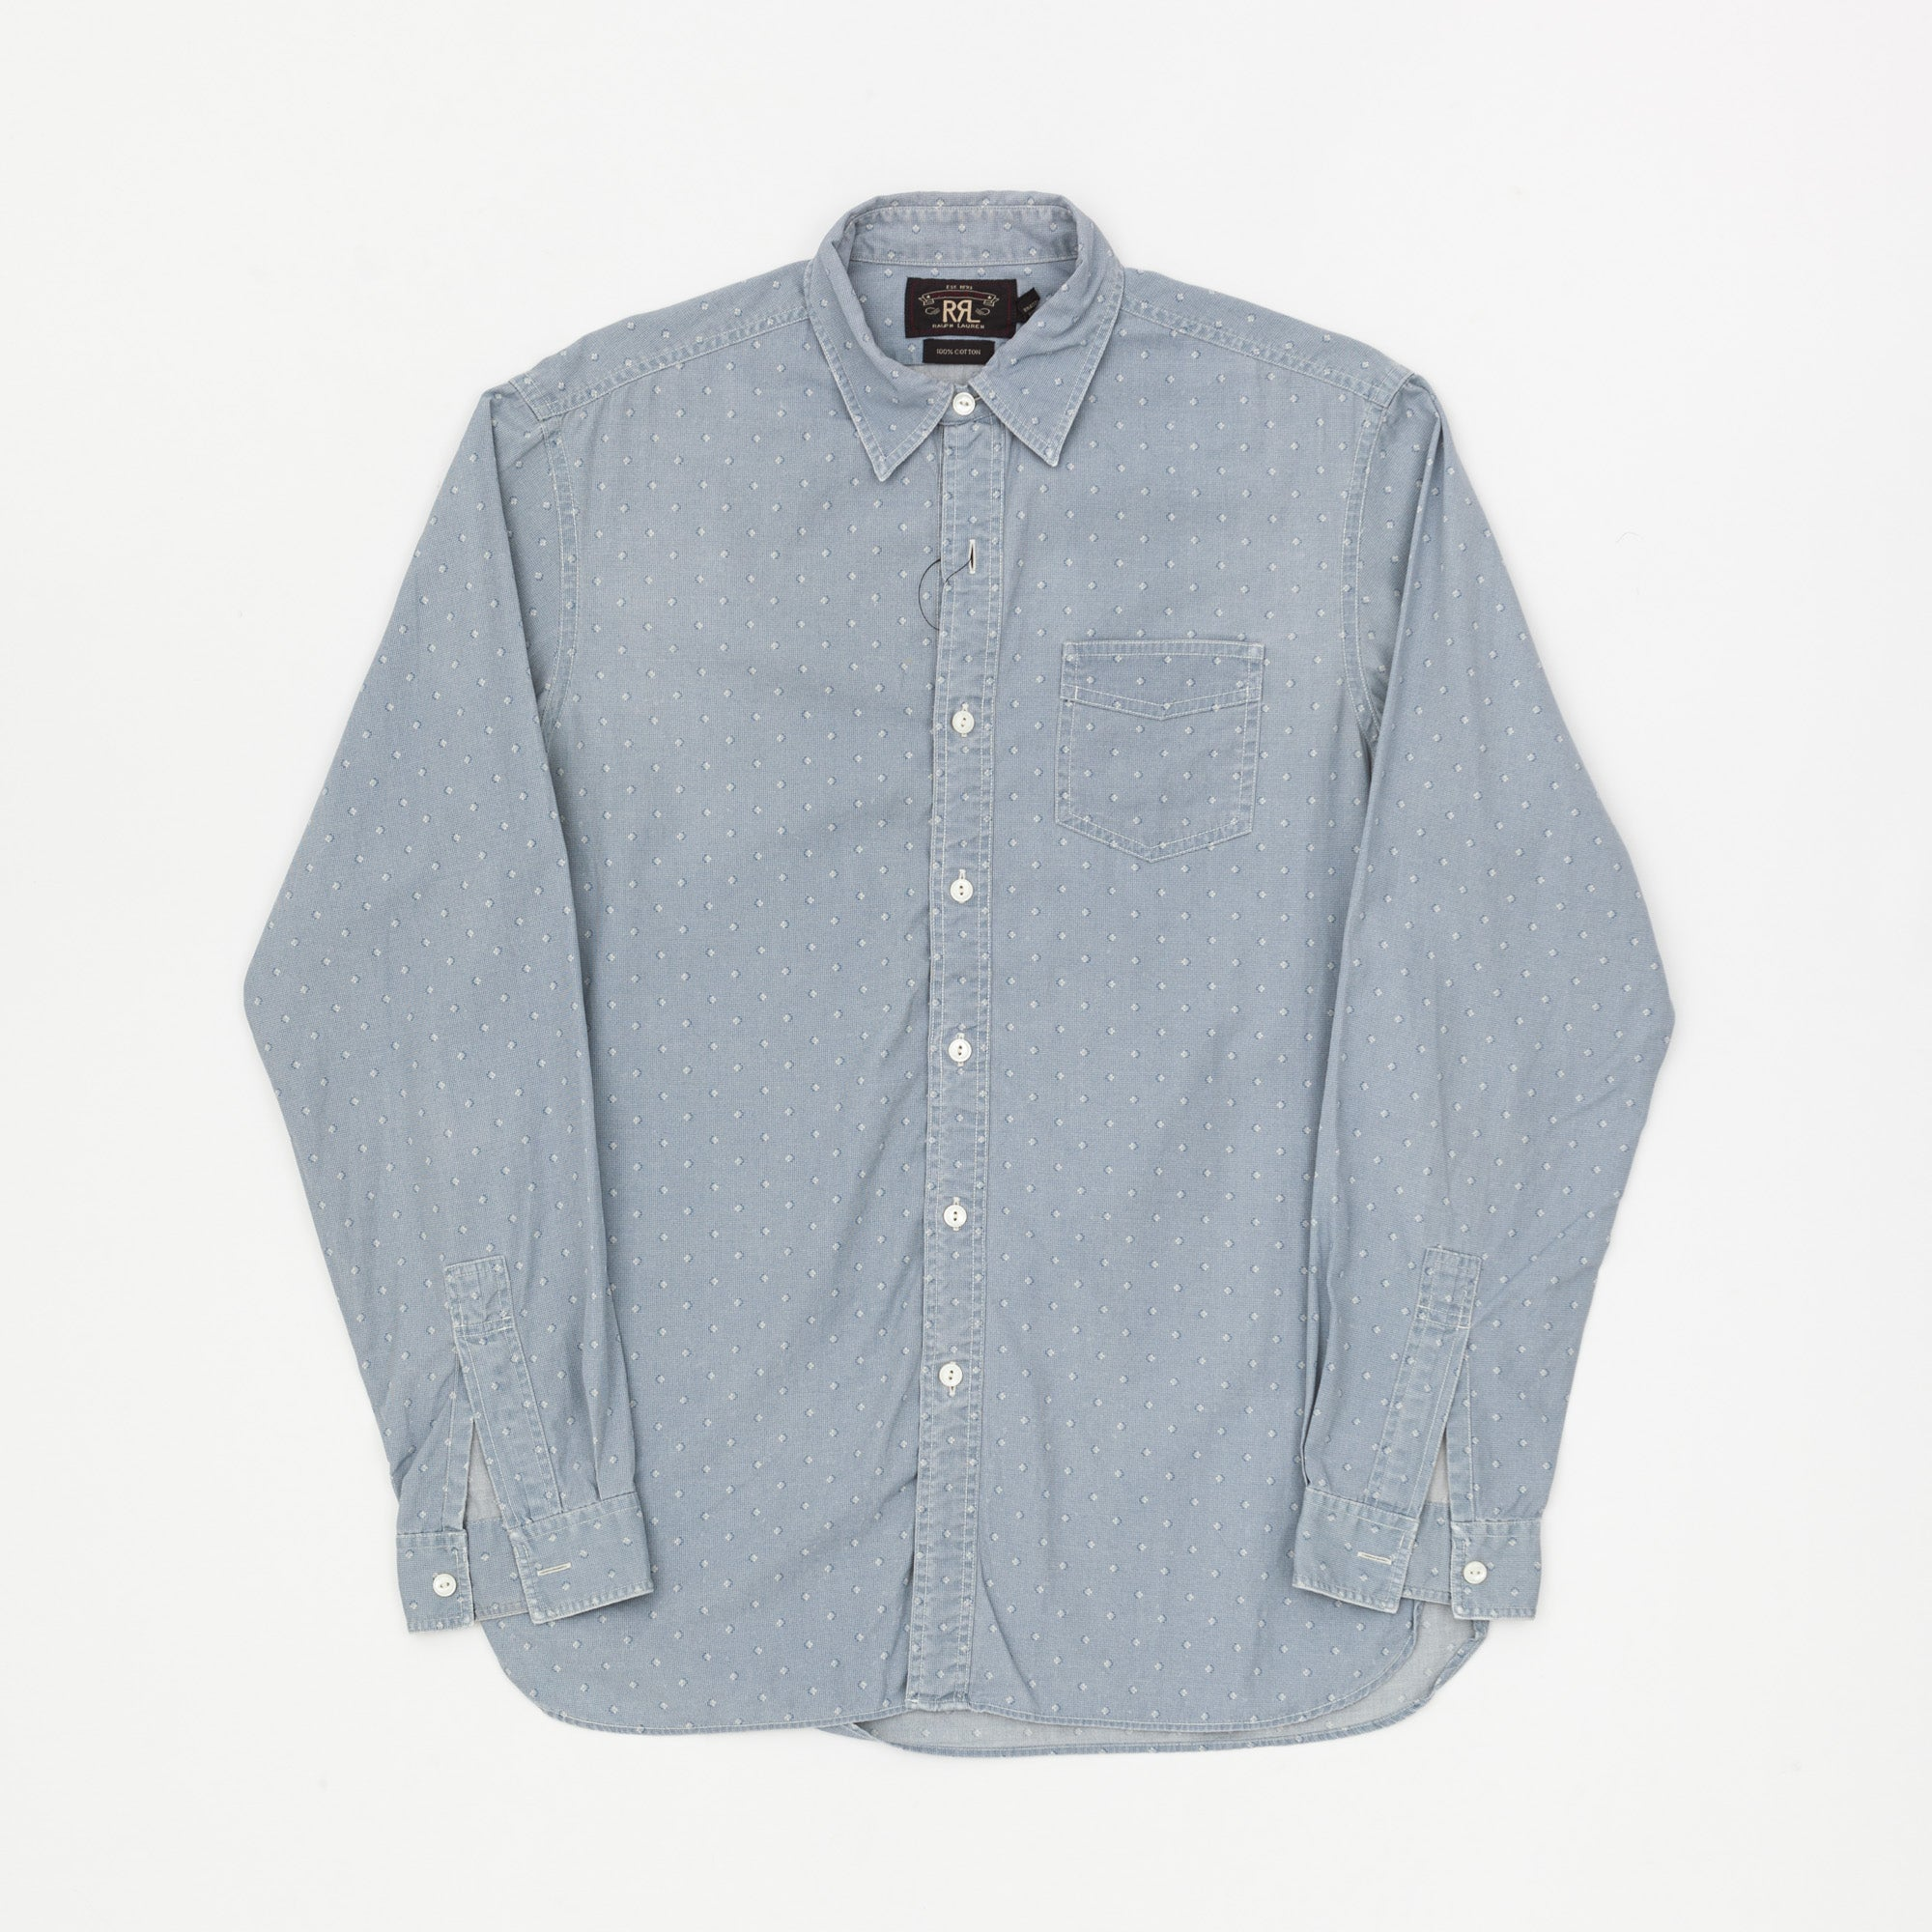 RRL Formal Dot Pattern Shirt